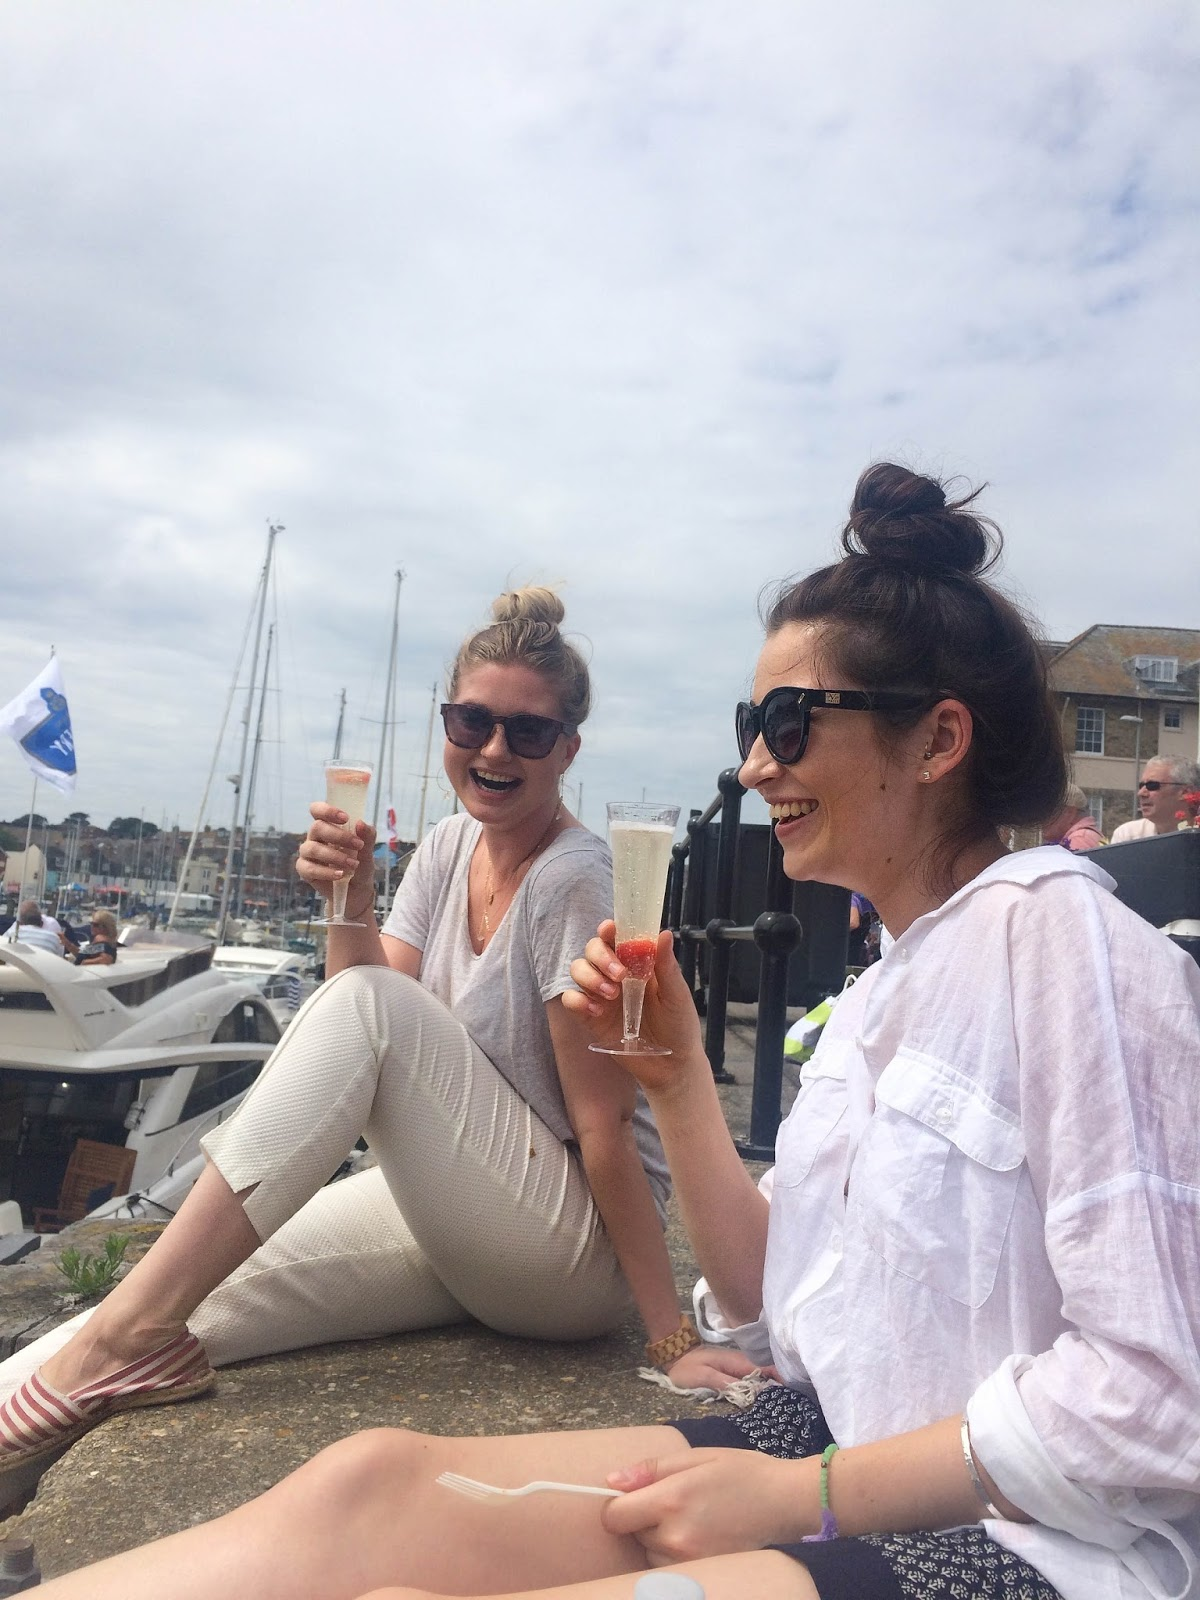 Pommery Dorset Seafood Festival in Weymouth, street food, food bloggers, lifestyle bloggers